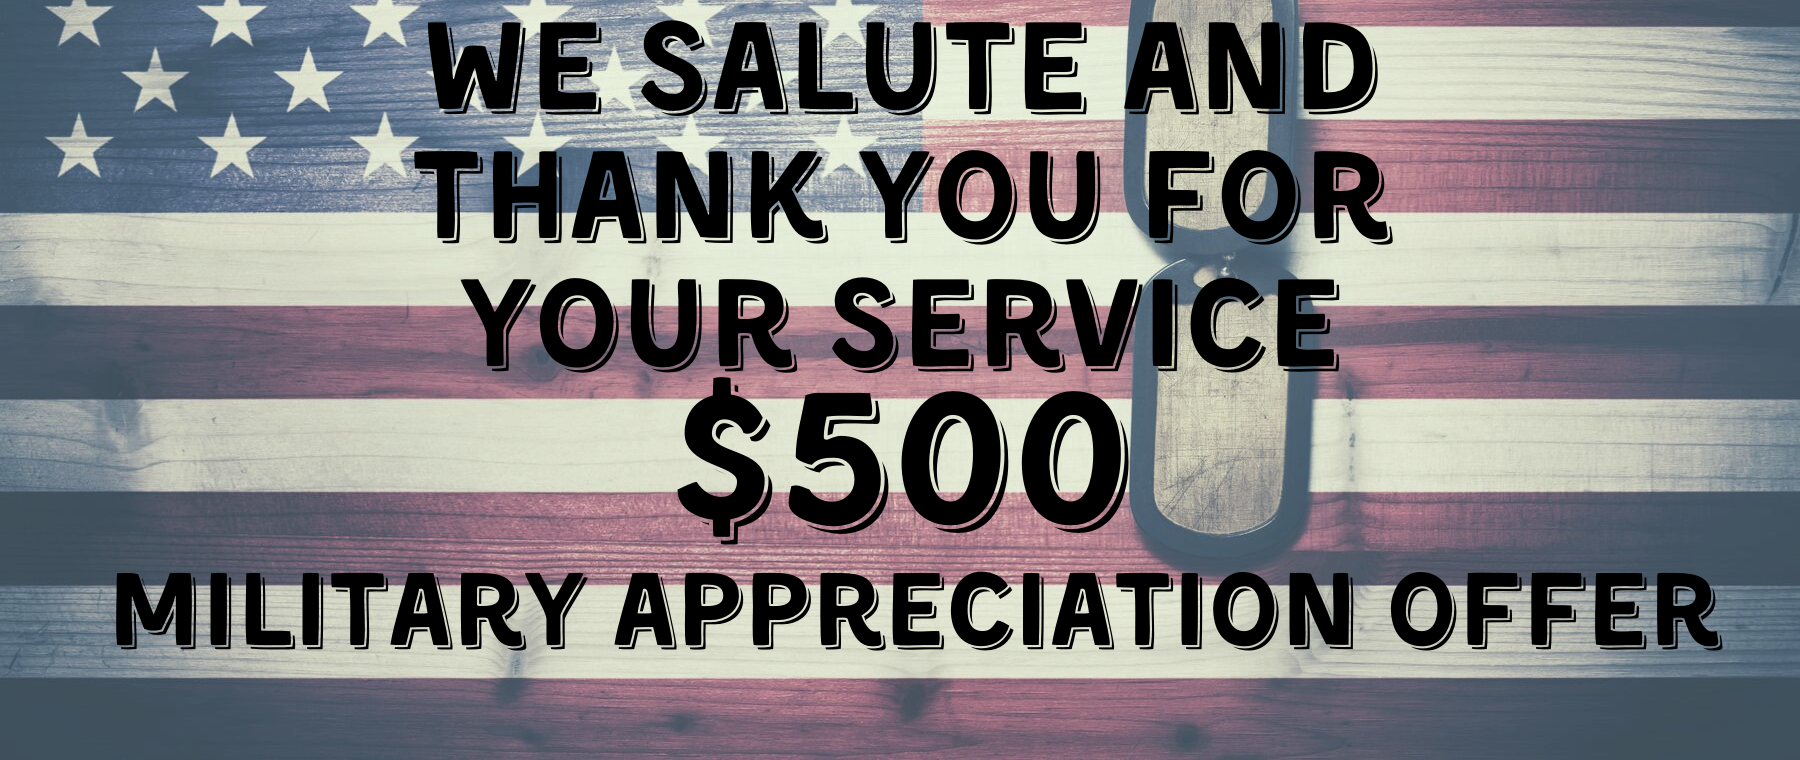 Military Appreciation Offer $500